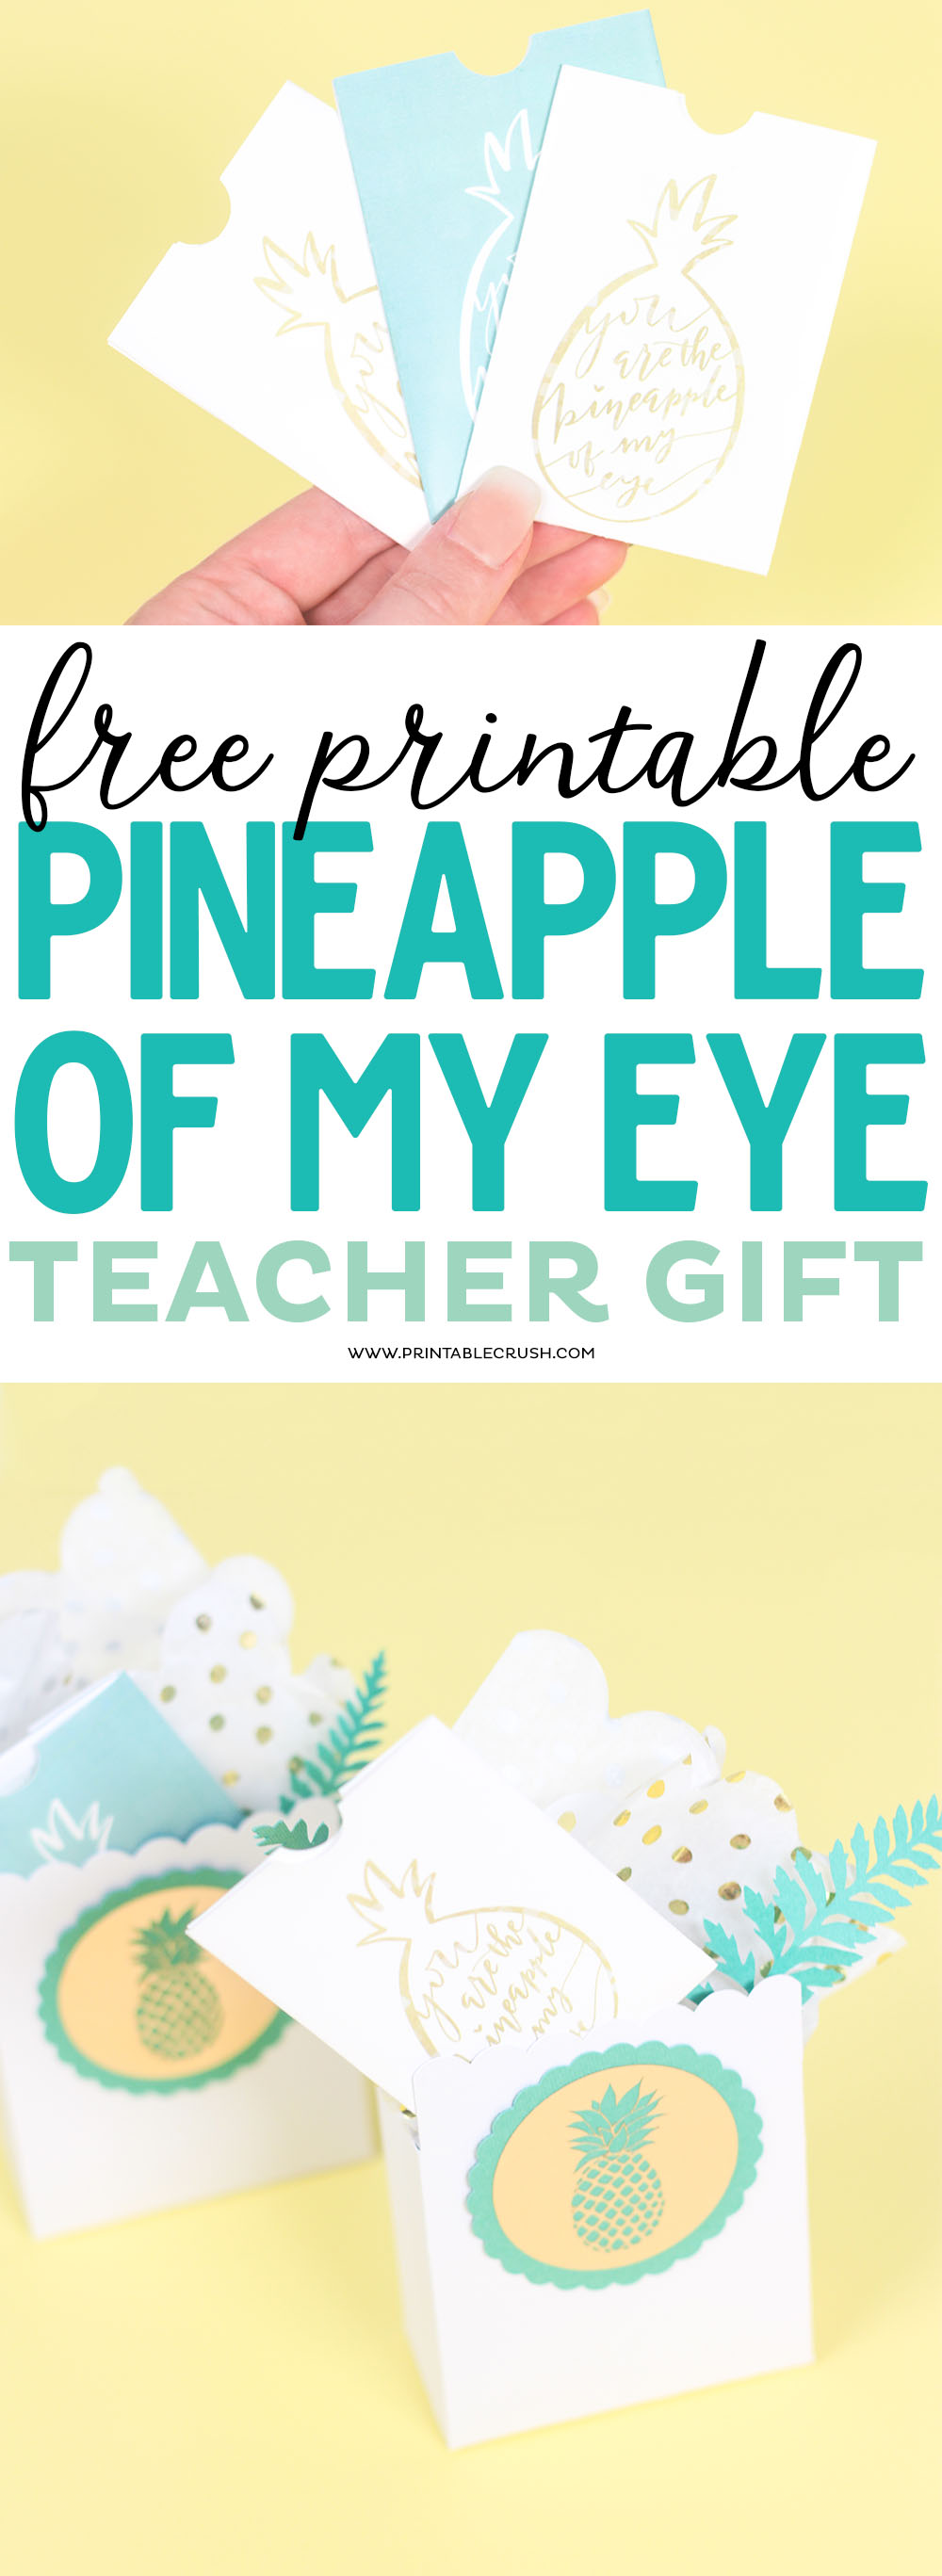 Download these free printable pineapple gift card holders for teacher appreciation week!